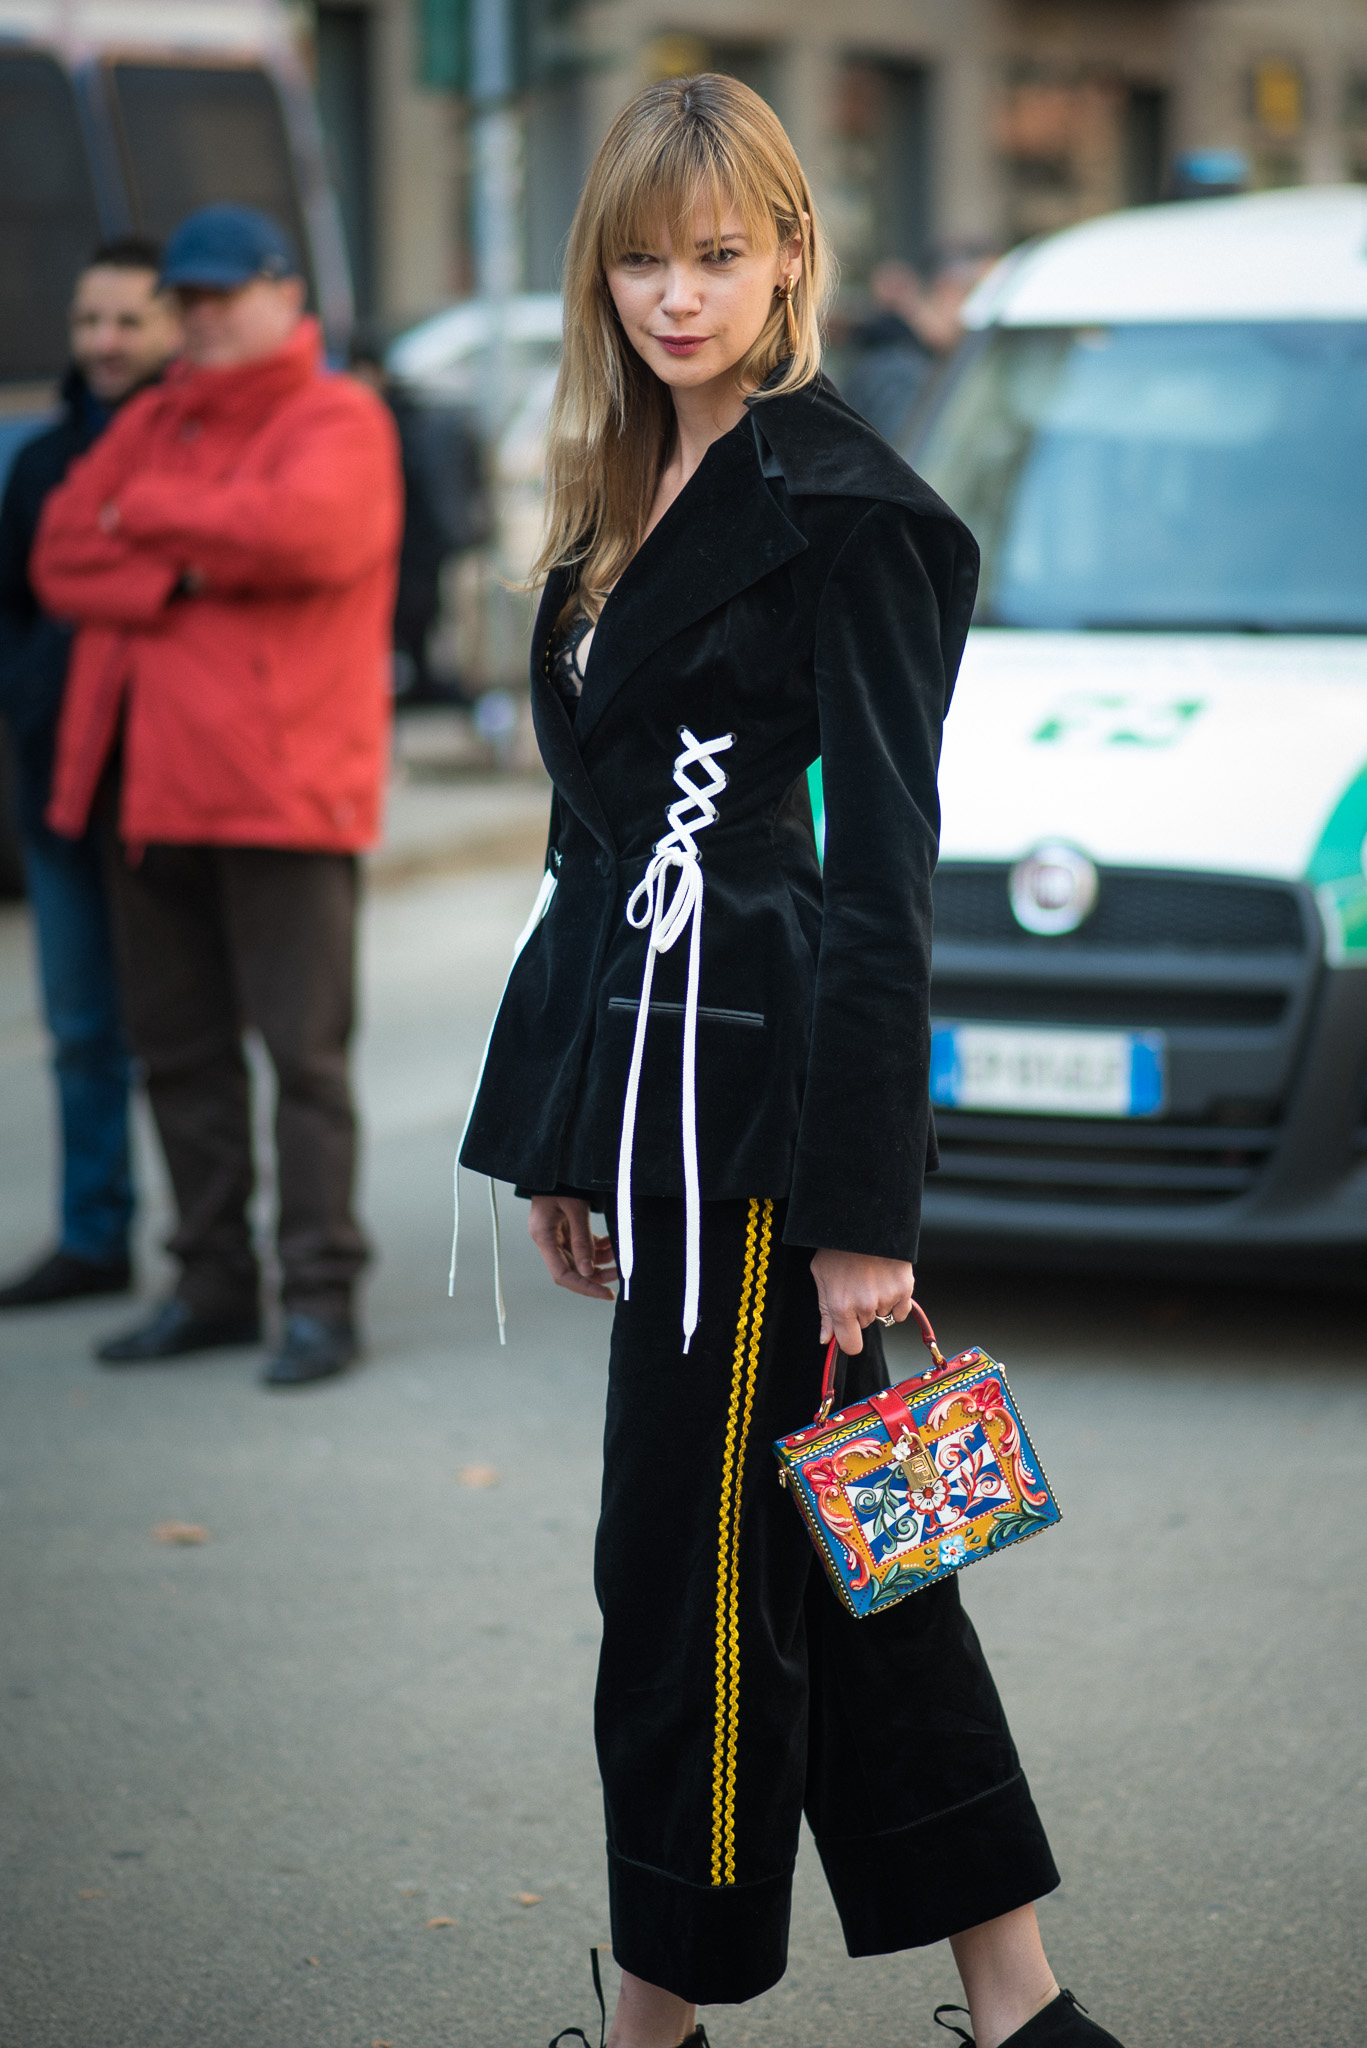 Anastasiia Masiutkina_Street Style_Dolce & Gabbana_Milan Fashion Week_February 26th 2017_Photography Annika Lagerqvist_www.annikasomething.com